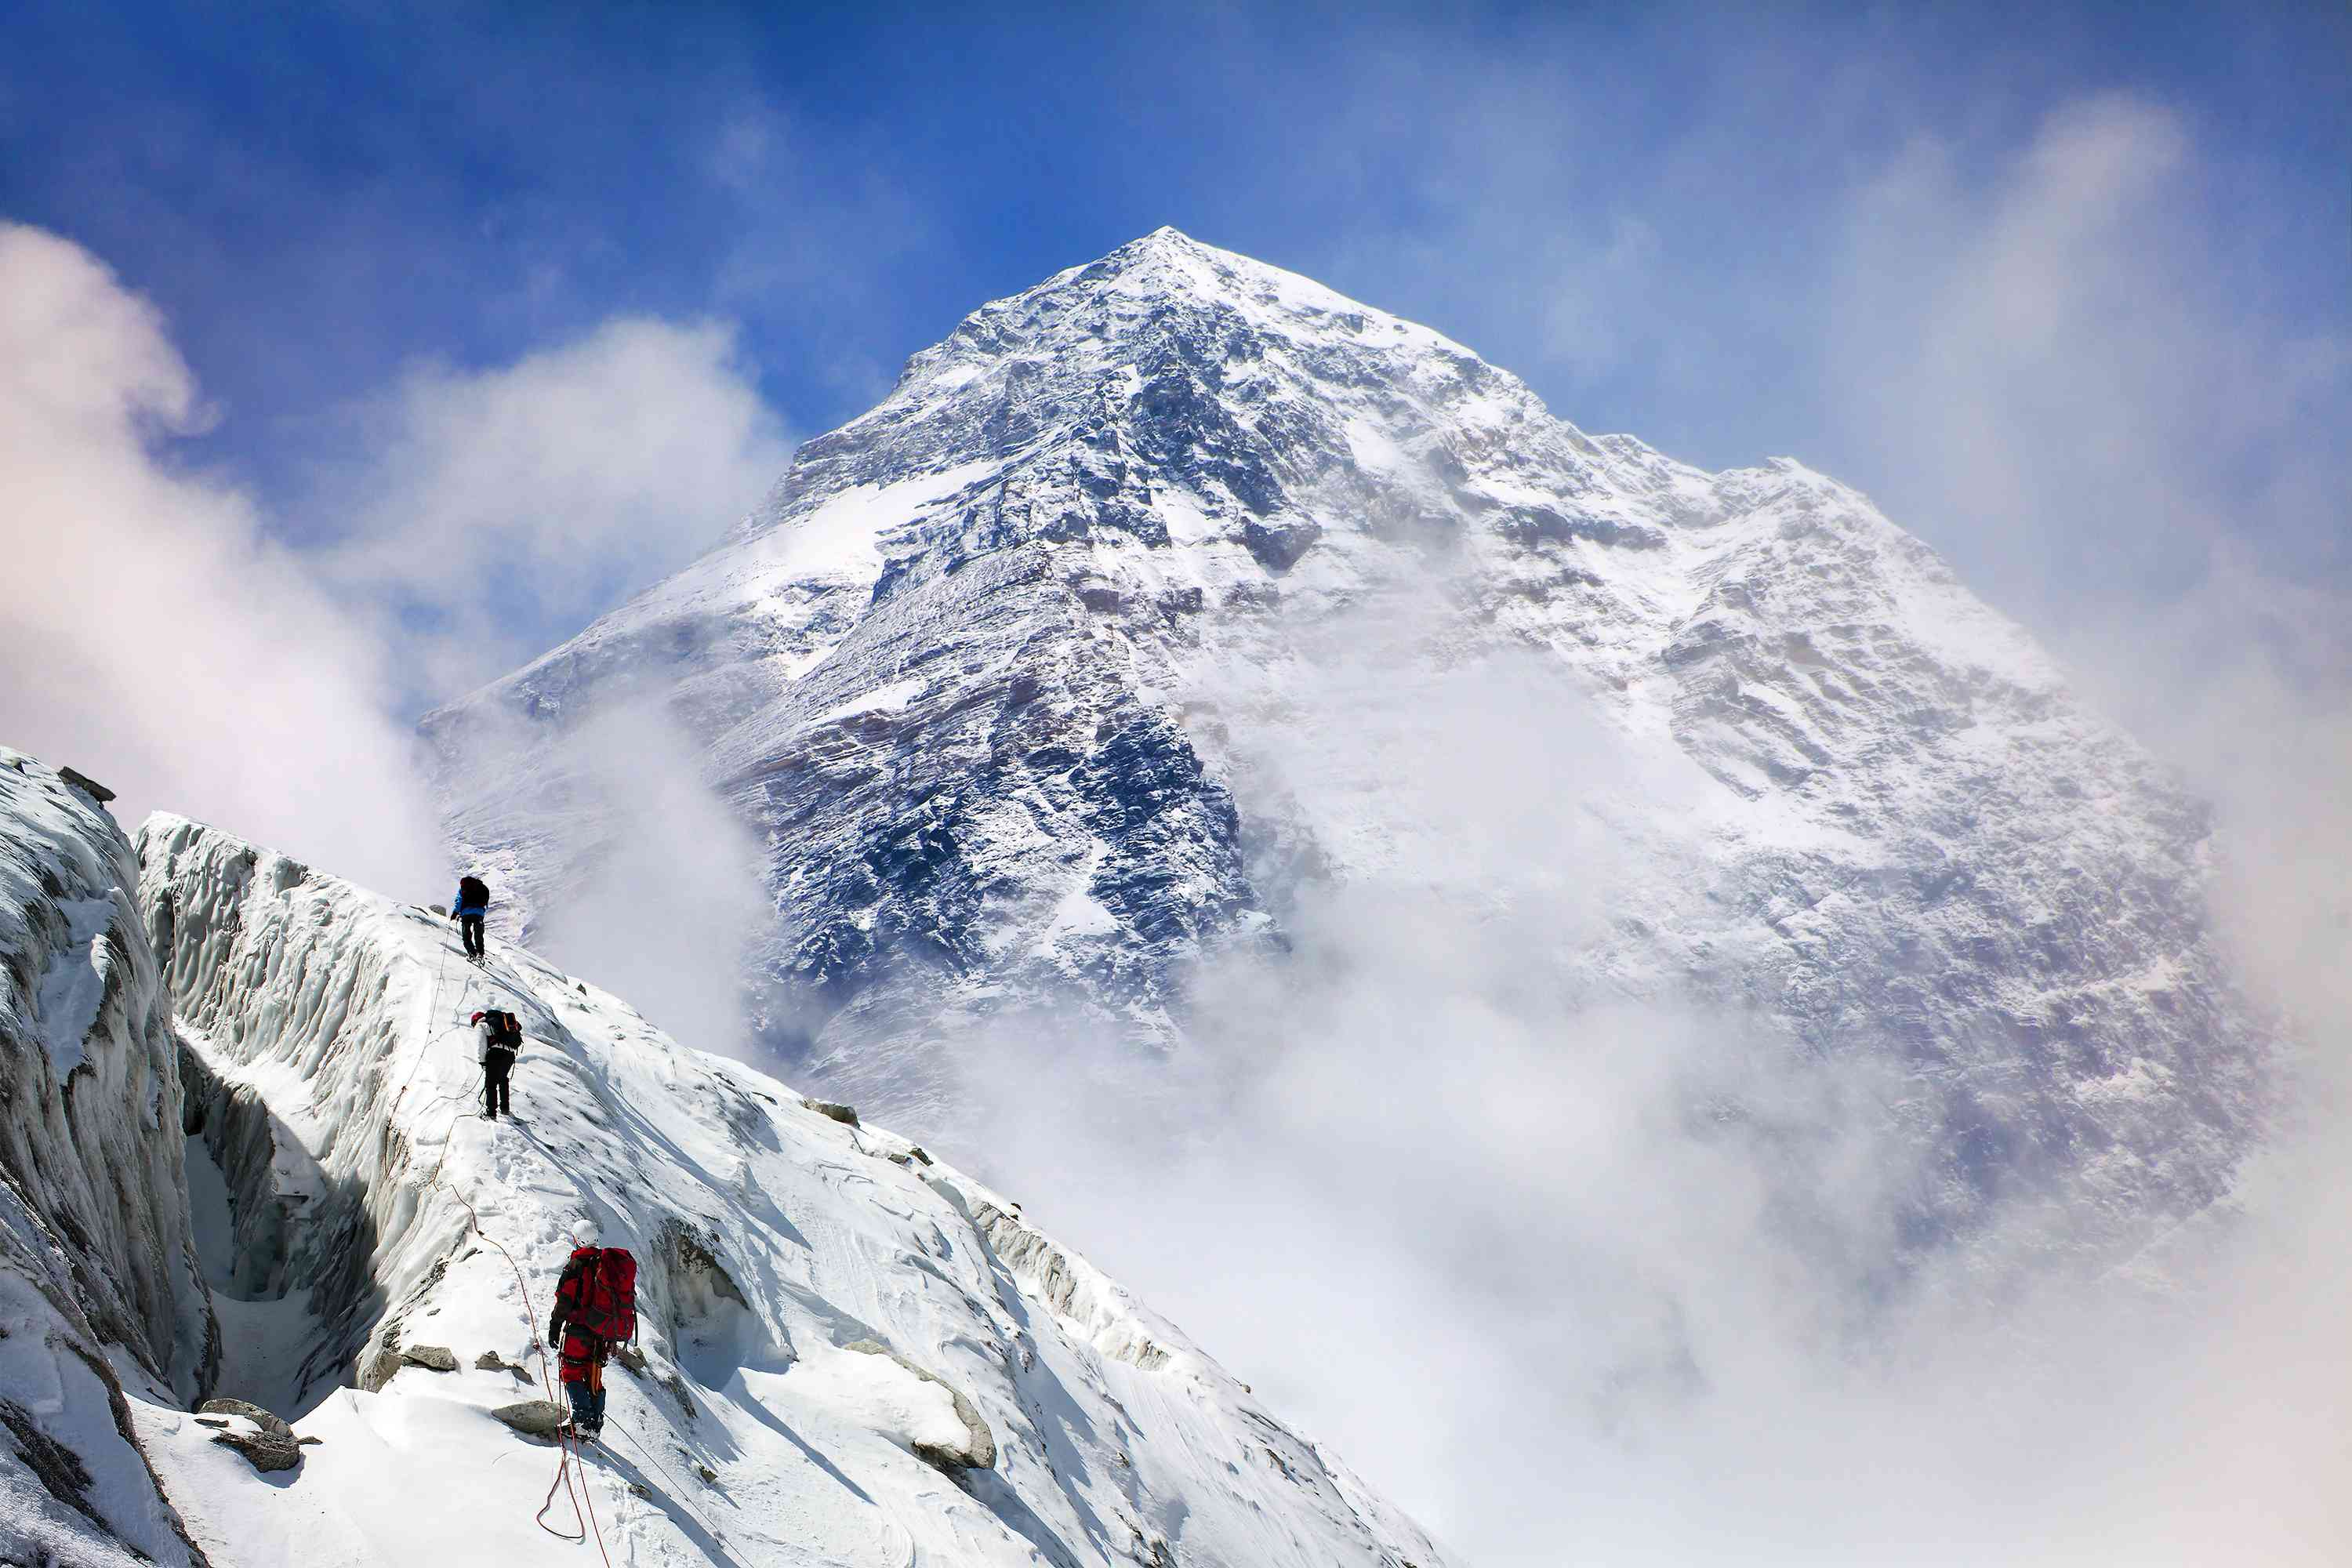 Mount Everest with group of climbers